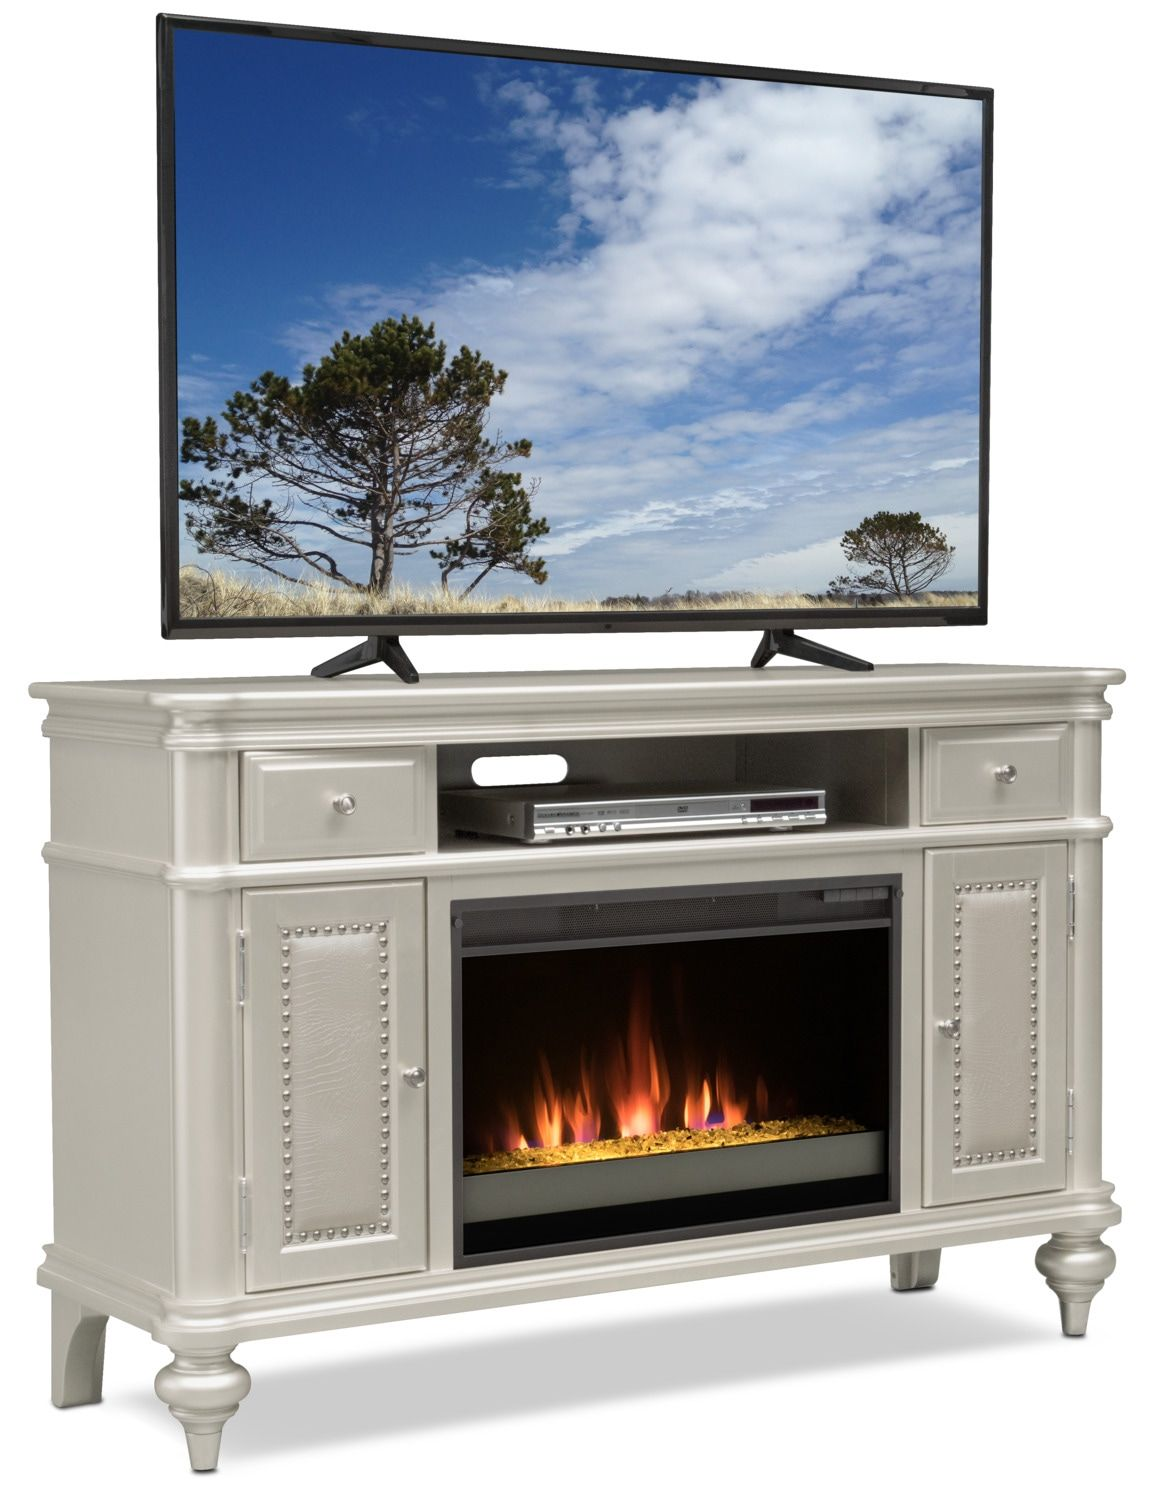 Esquire Fireplace Tv Stand Products In 2019 Fireplace Tv